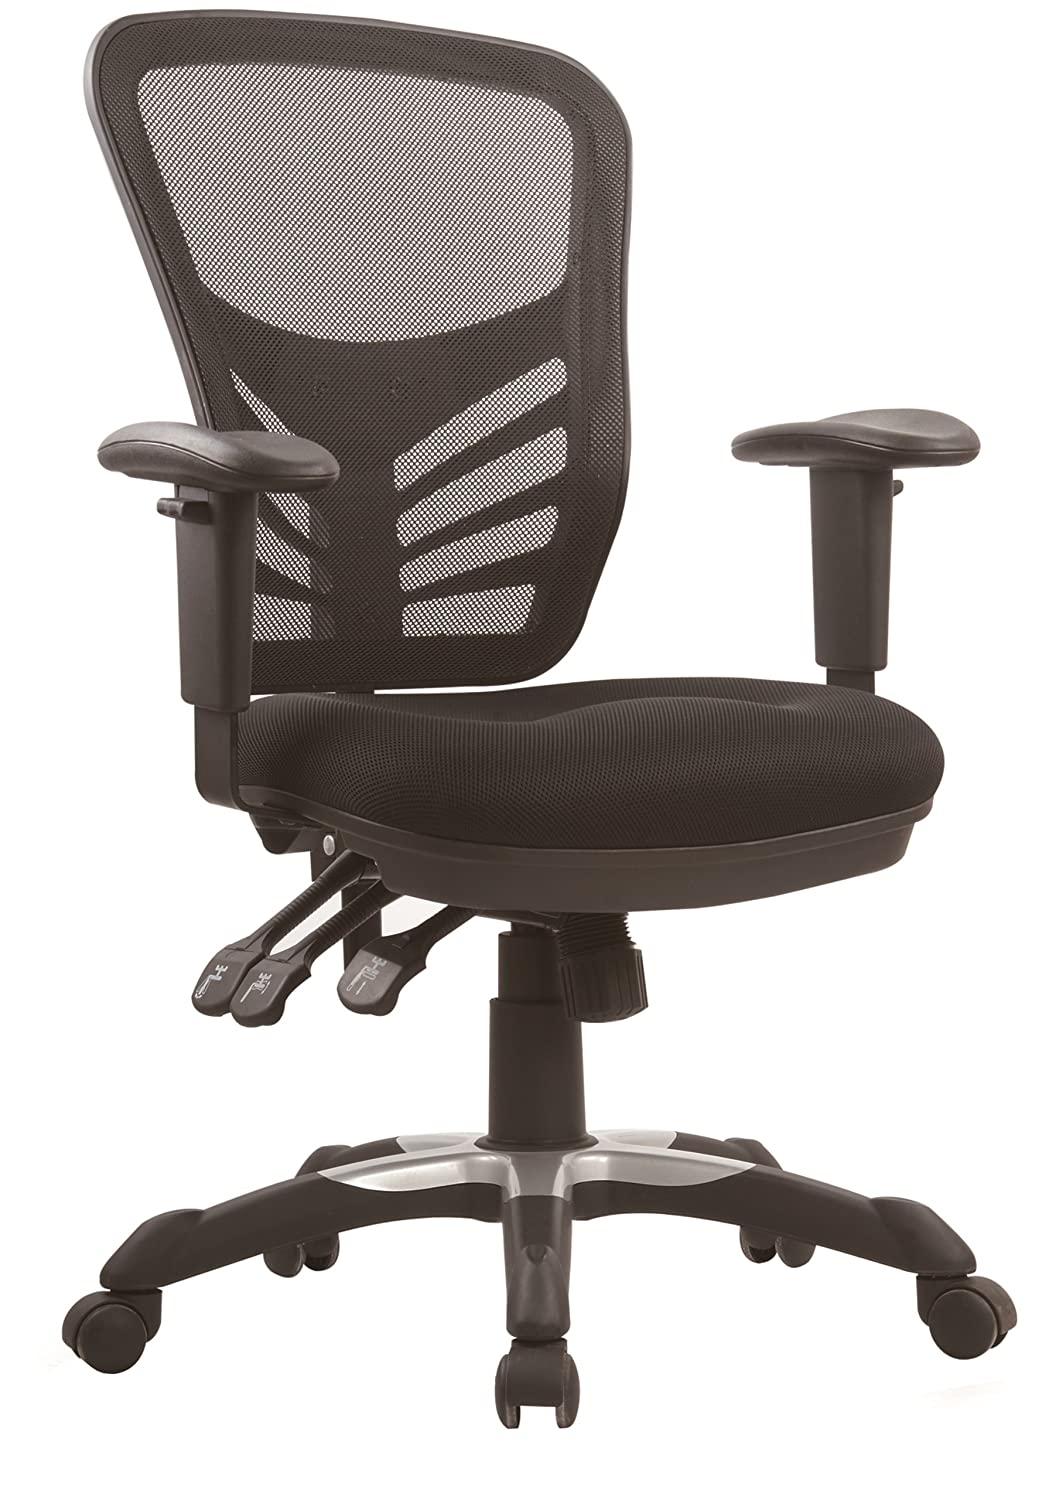 Amazon.com: Home Office Desk Chairs: Home & Kitchen: Adjustable